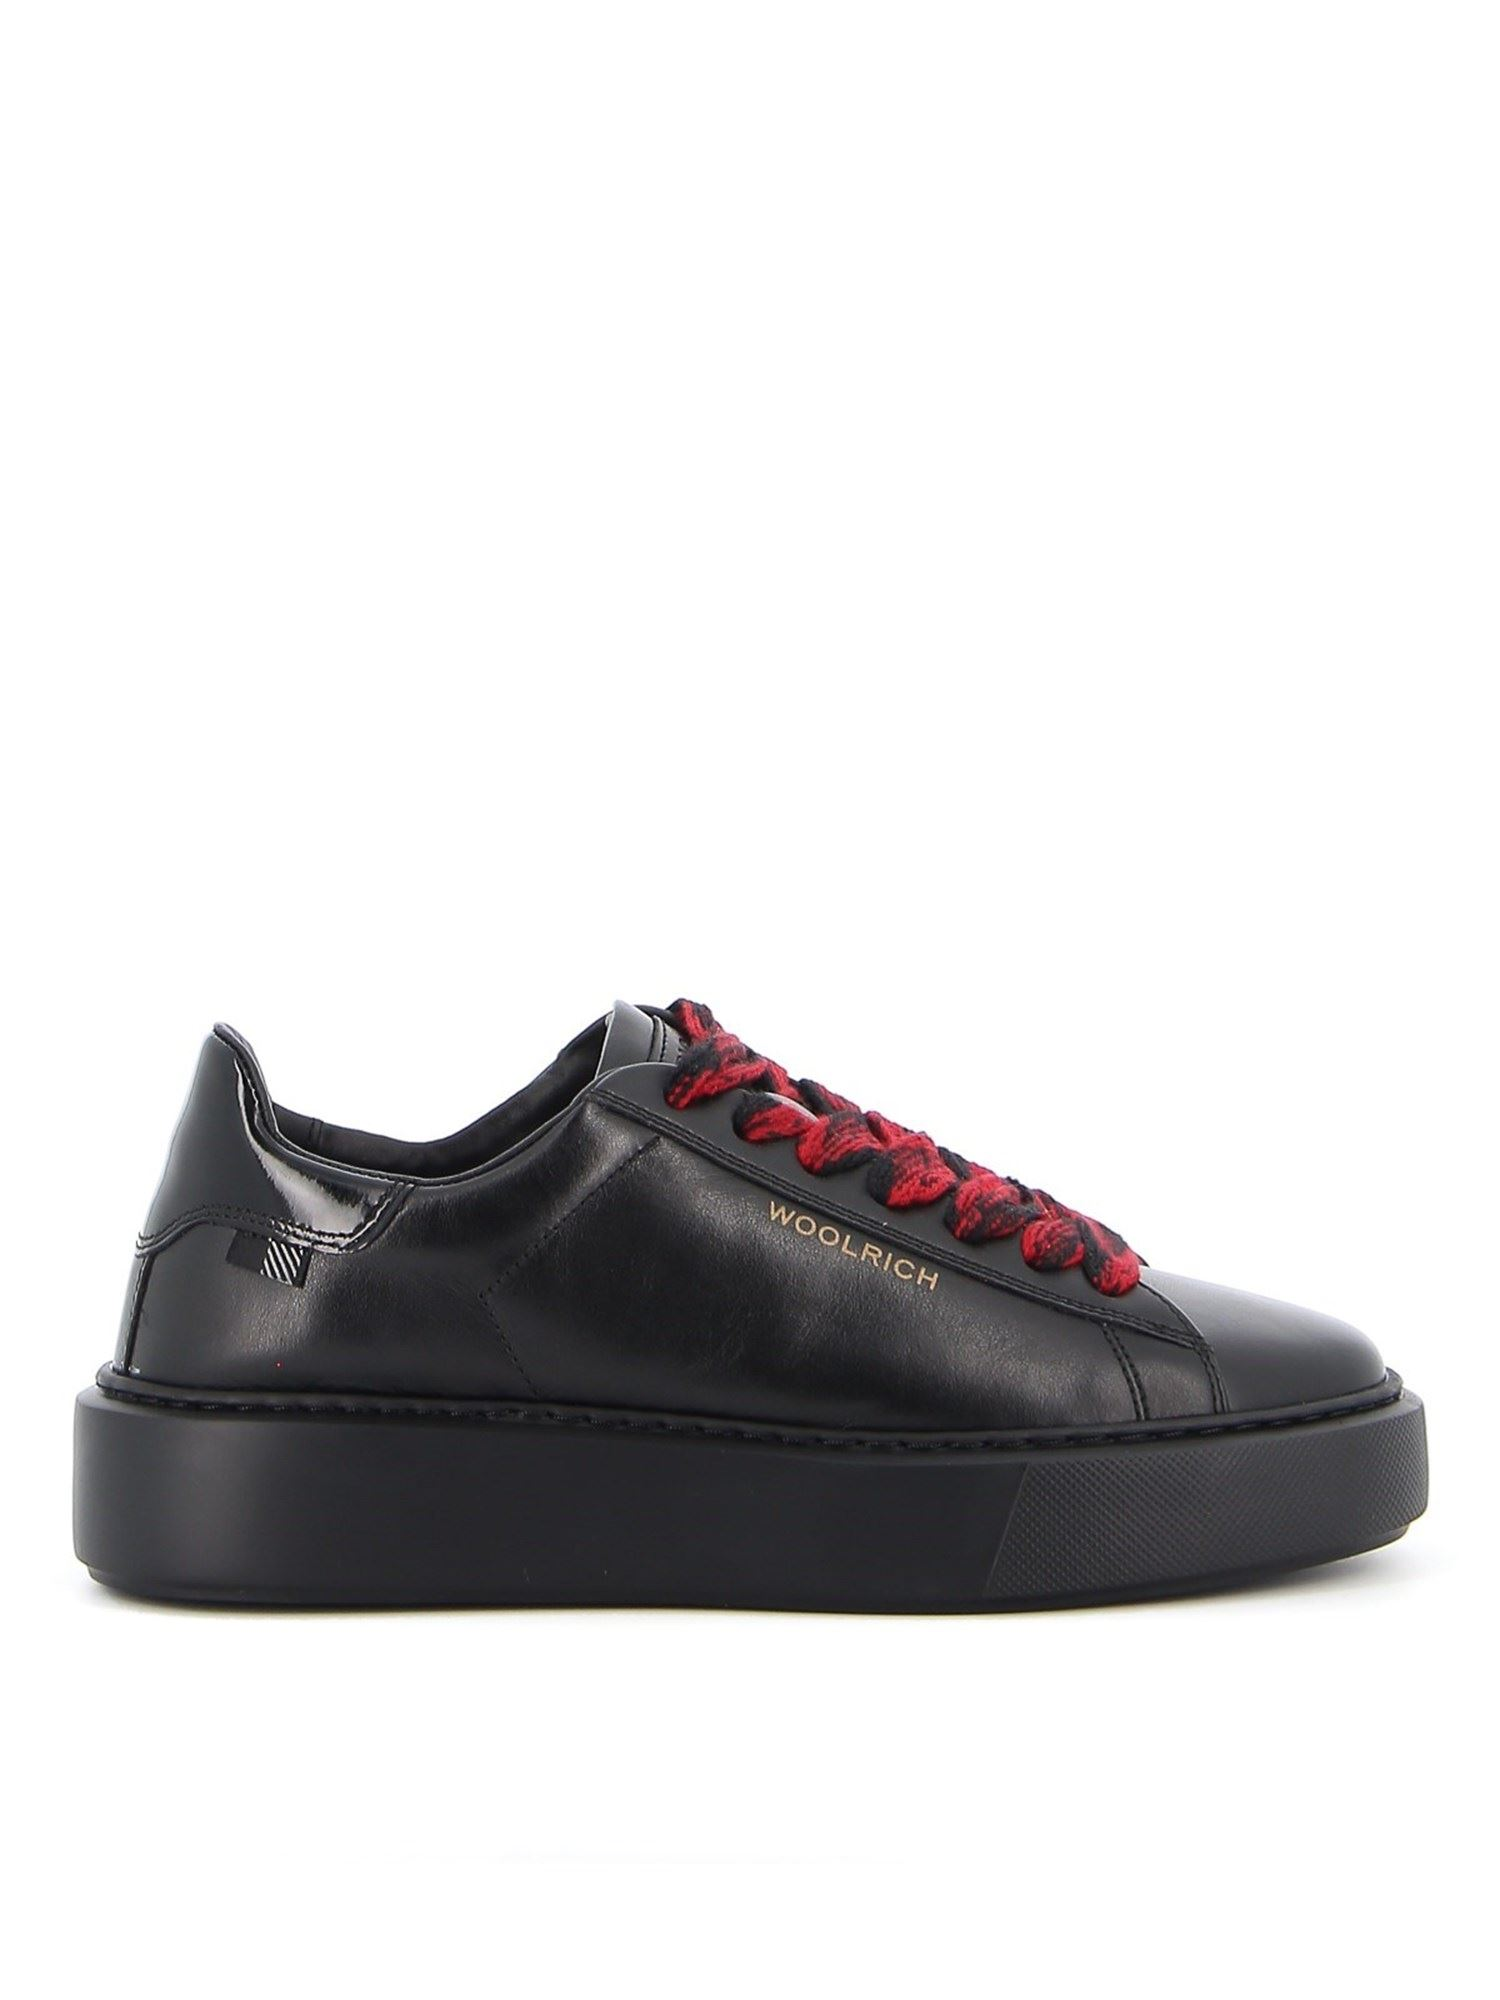 Woolrich Leathers LEATHER SNEAKERS IN BLACK